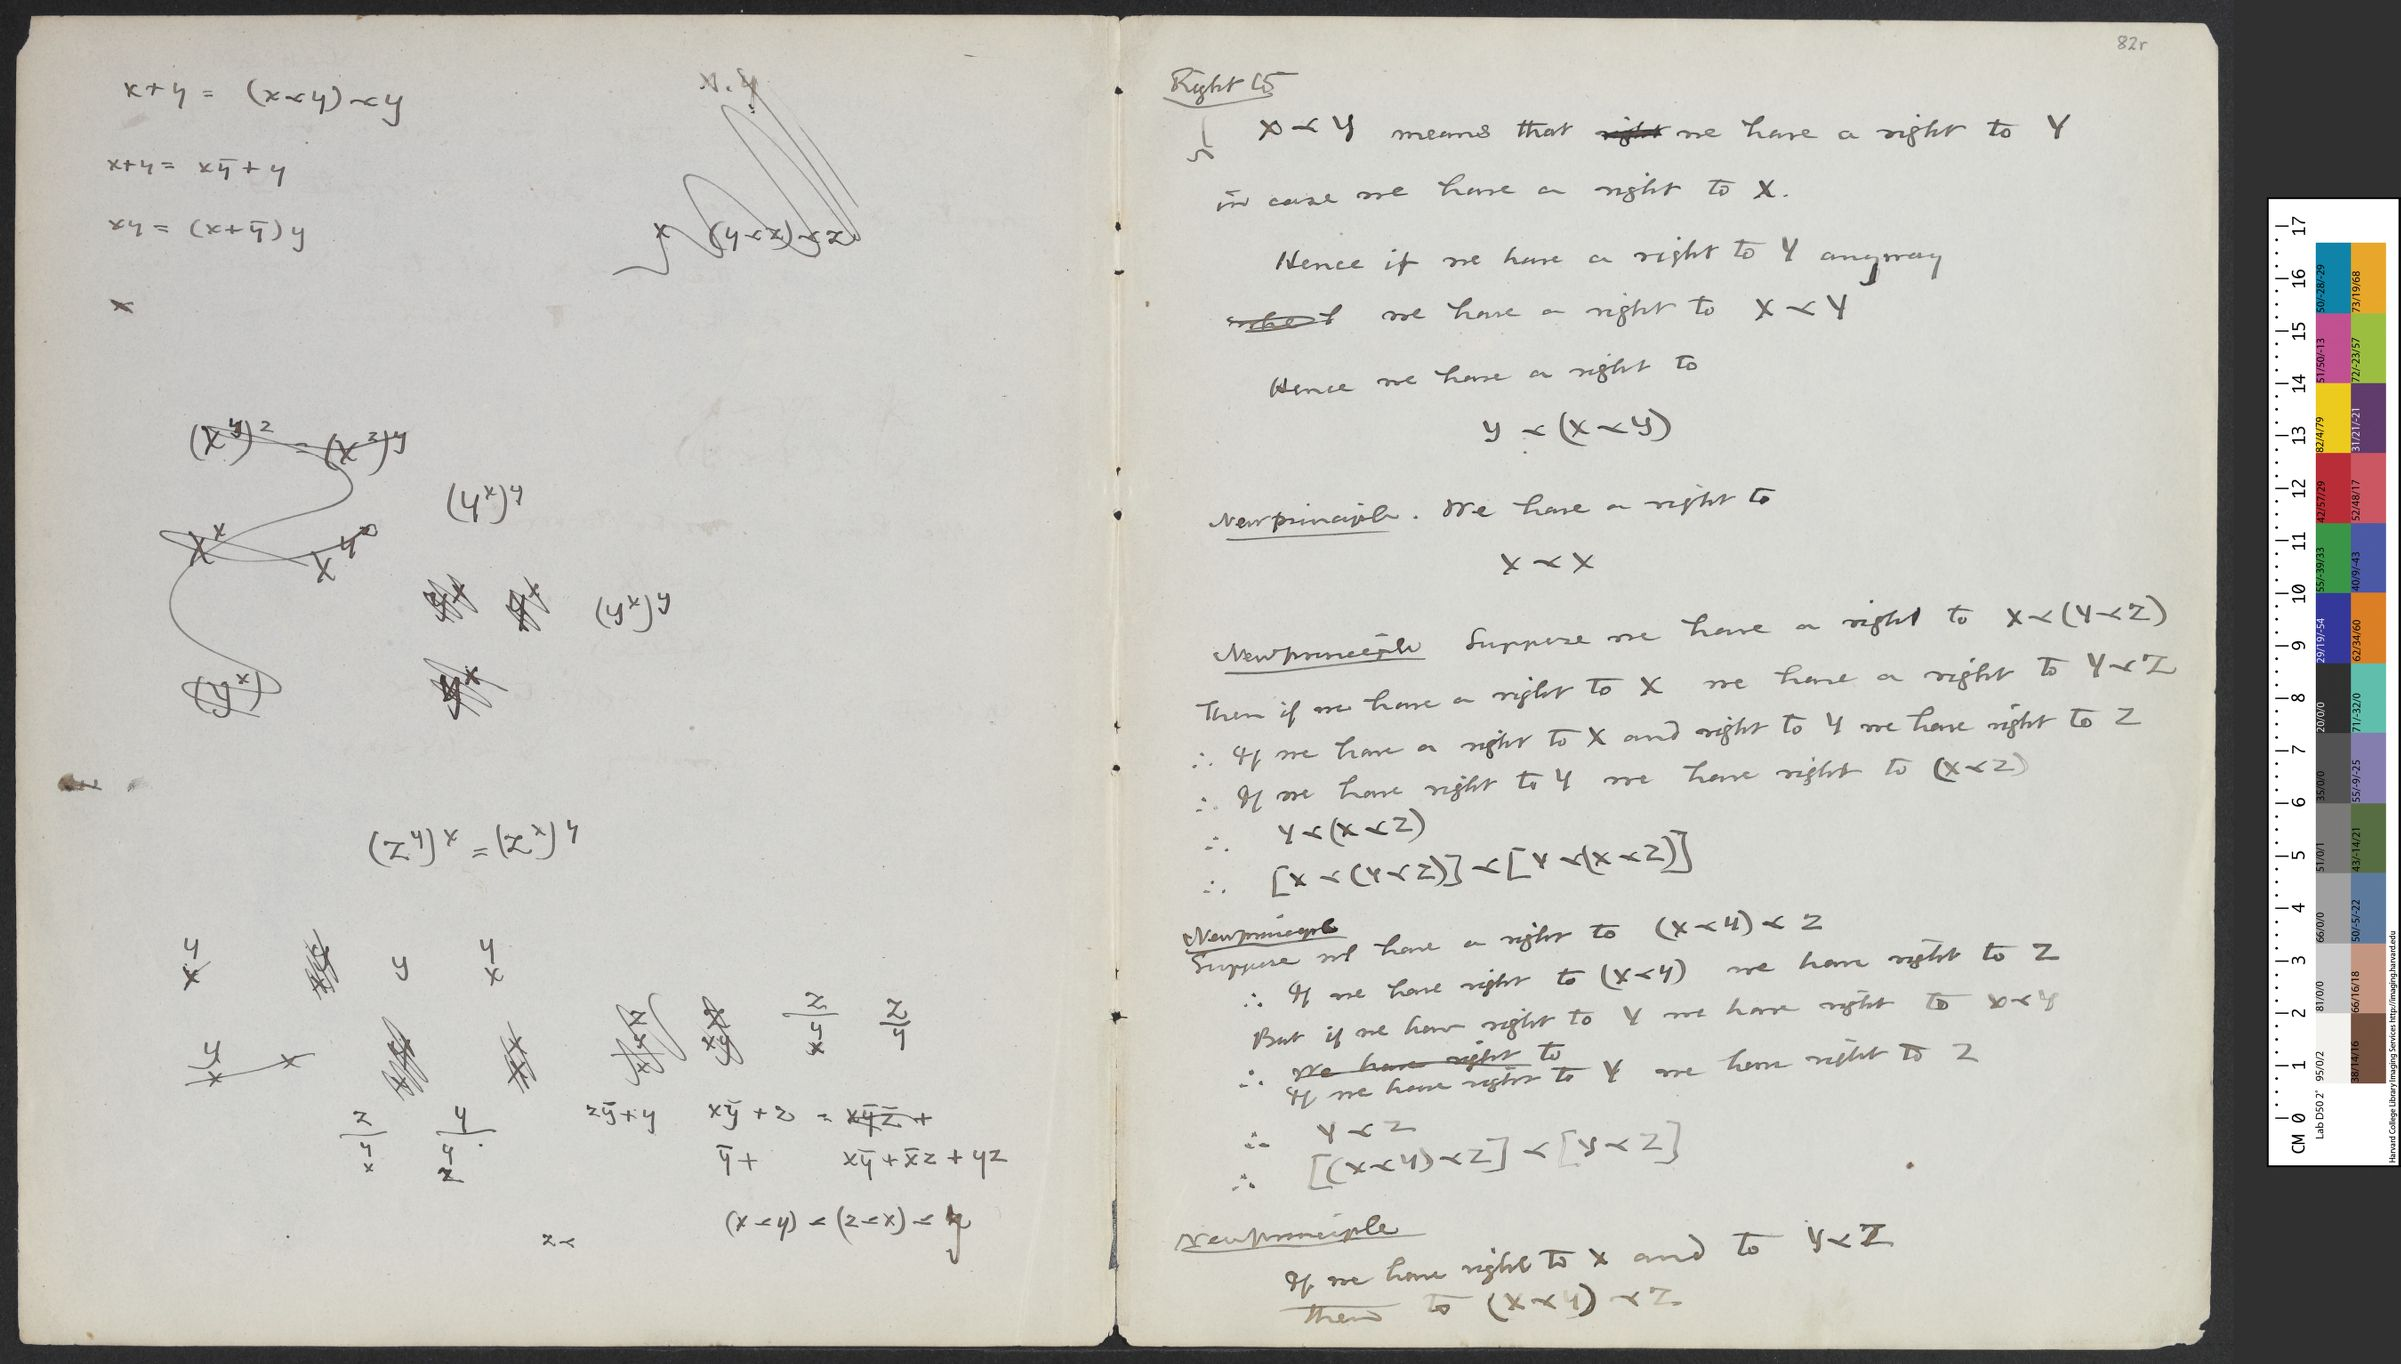 Peirce Logic Notebook, Charles Sanders Peirce Papers MS AM 1632 (339)